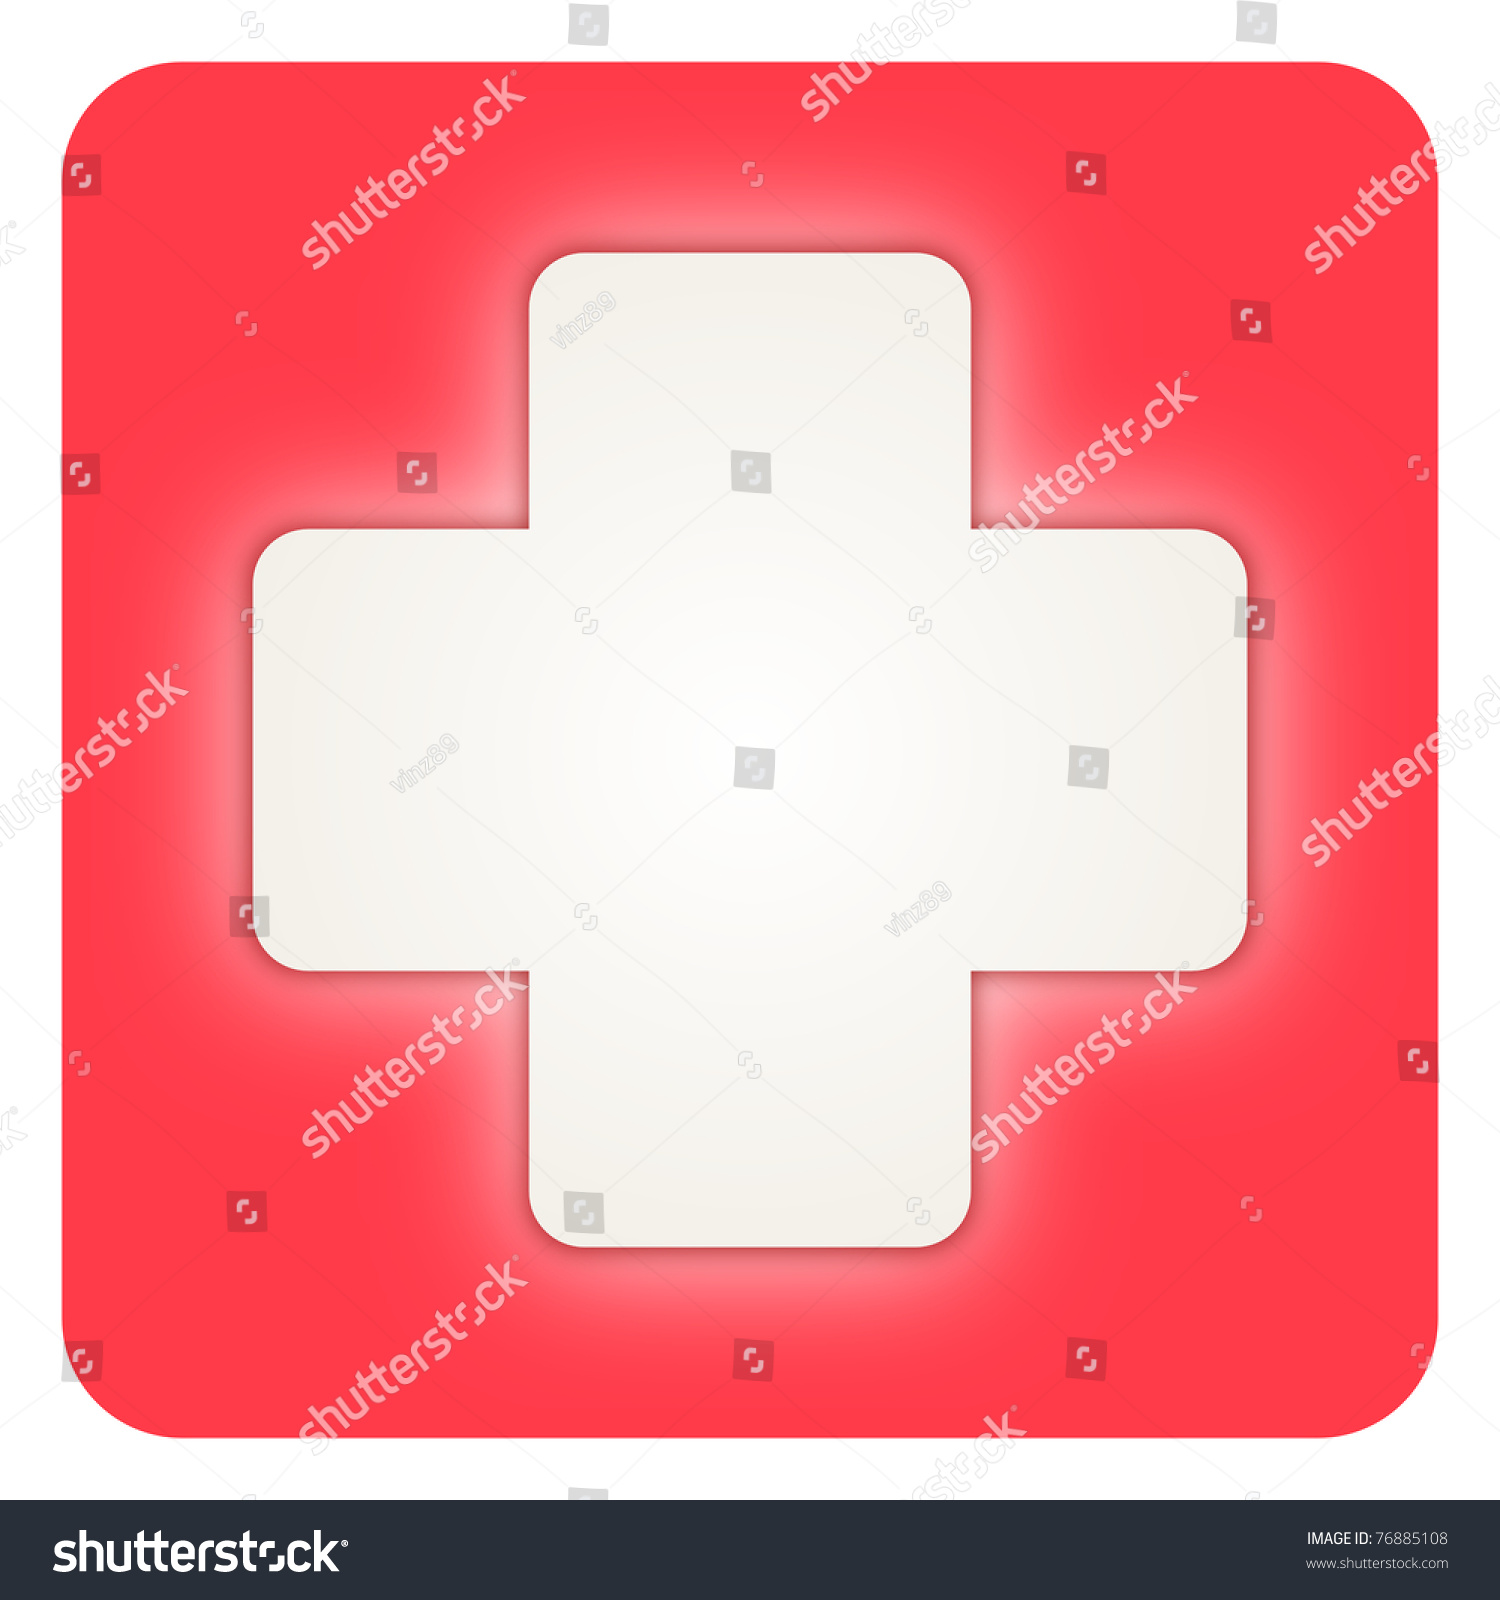 Red Cross Medical Symbol Stock Illustration 76885108 Shutterstock